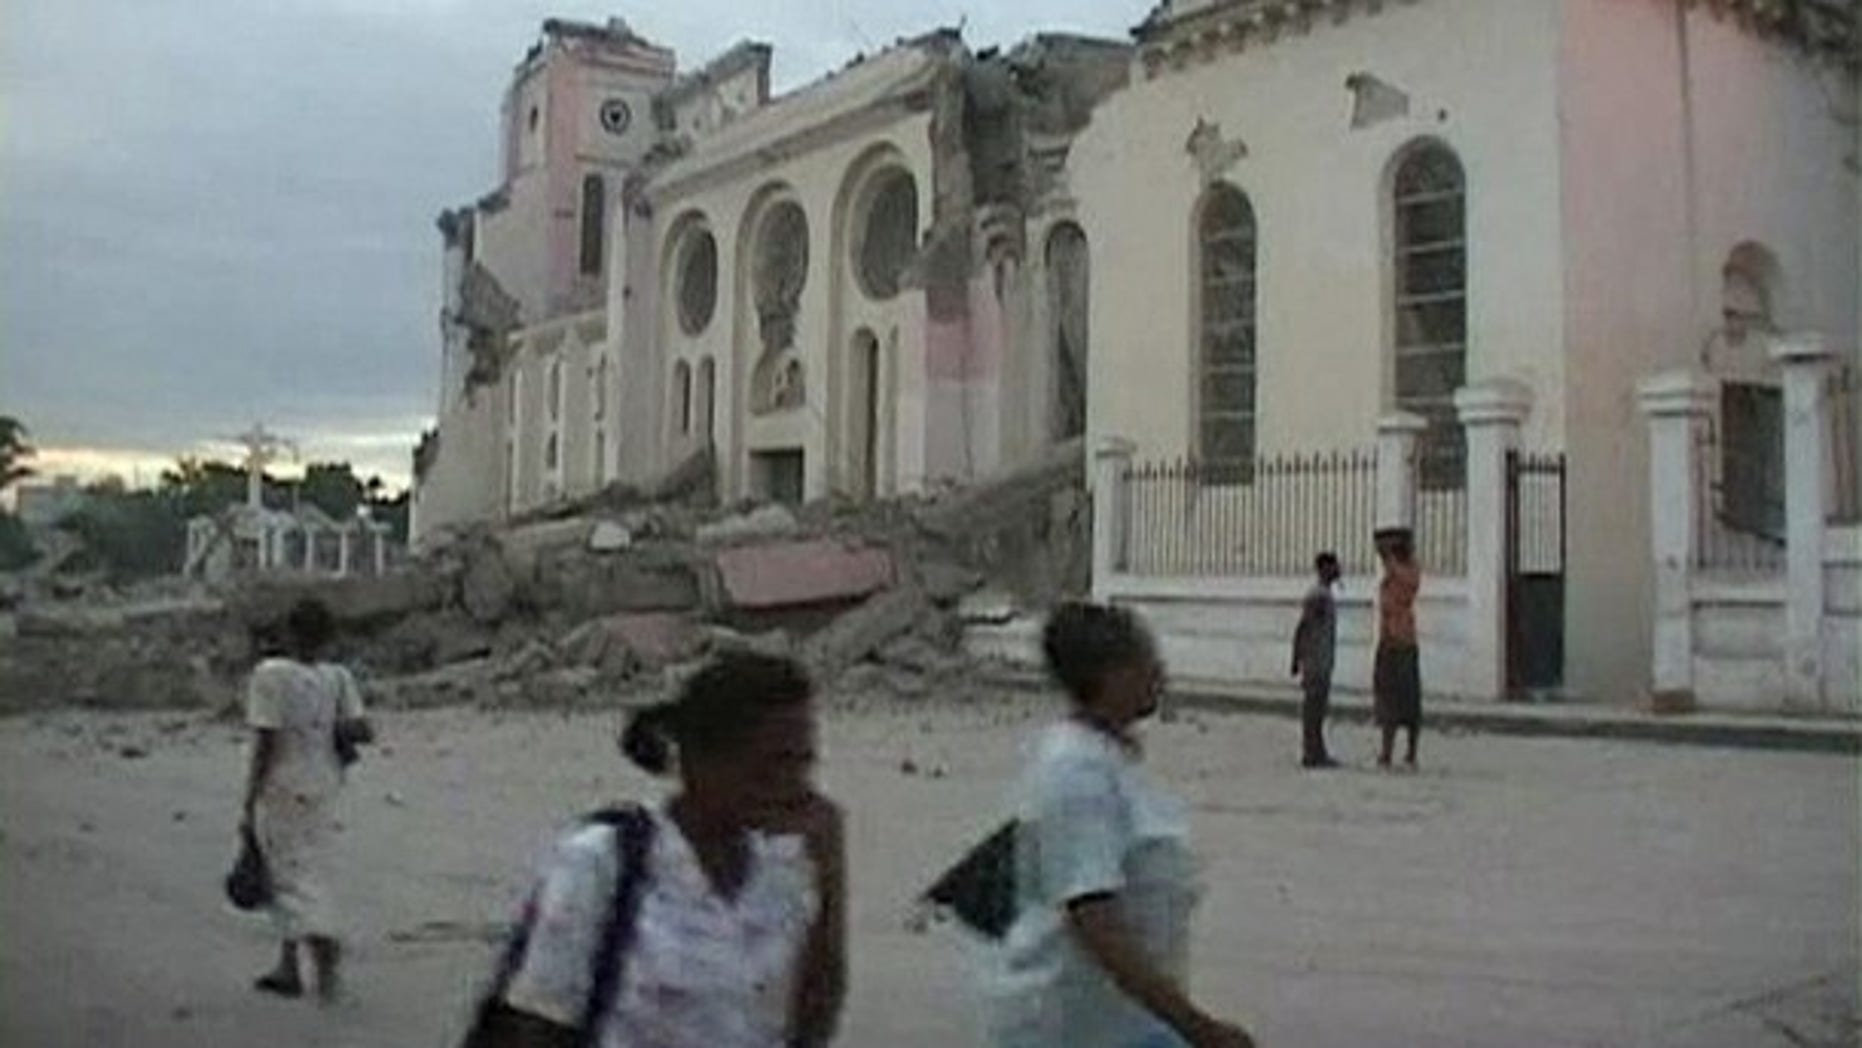 People walk near the ruins of a building, which was destroyed after a major earthquake struck near Port-au-Prince. The magnitude 7.0 quake toppled buildings and caused deaths and injuries.